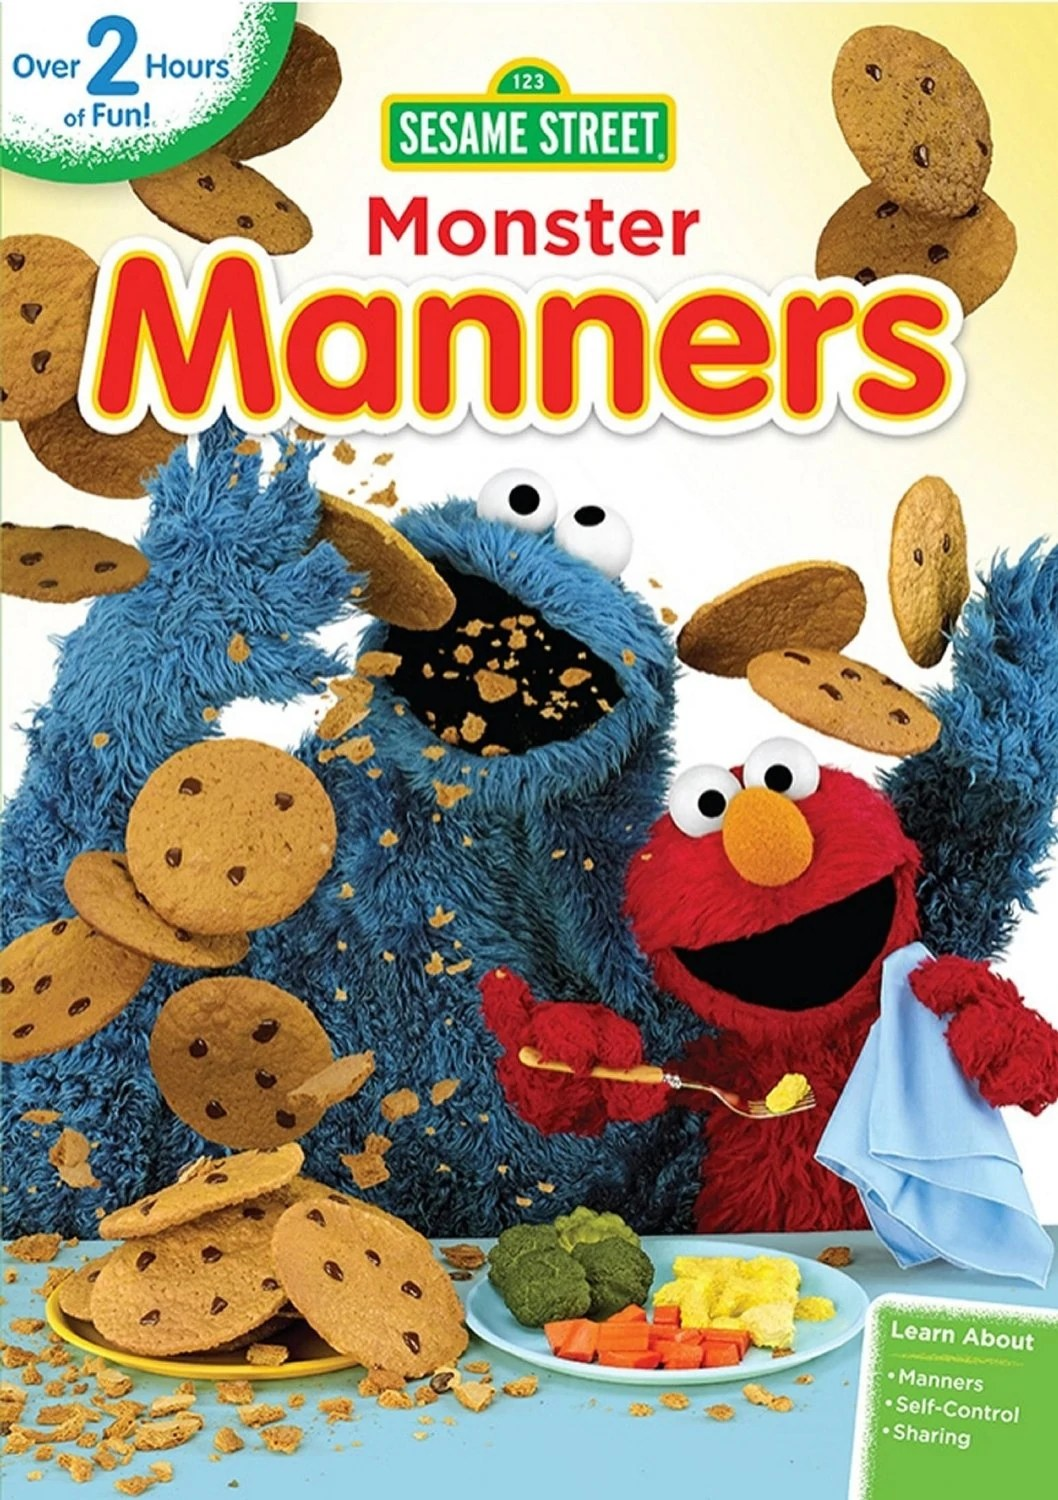 Monster Manners Muppet Wiki Fandom Powered By Wikia